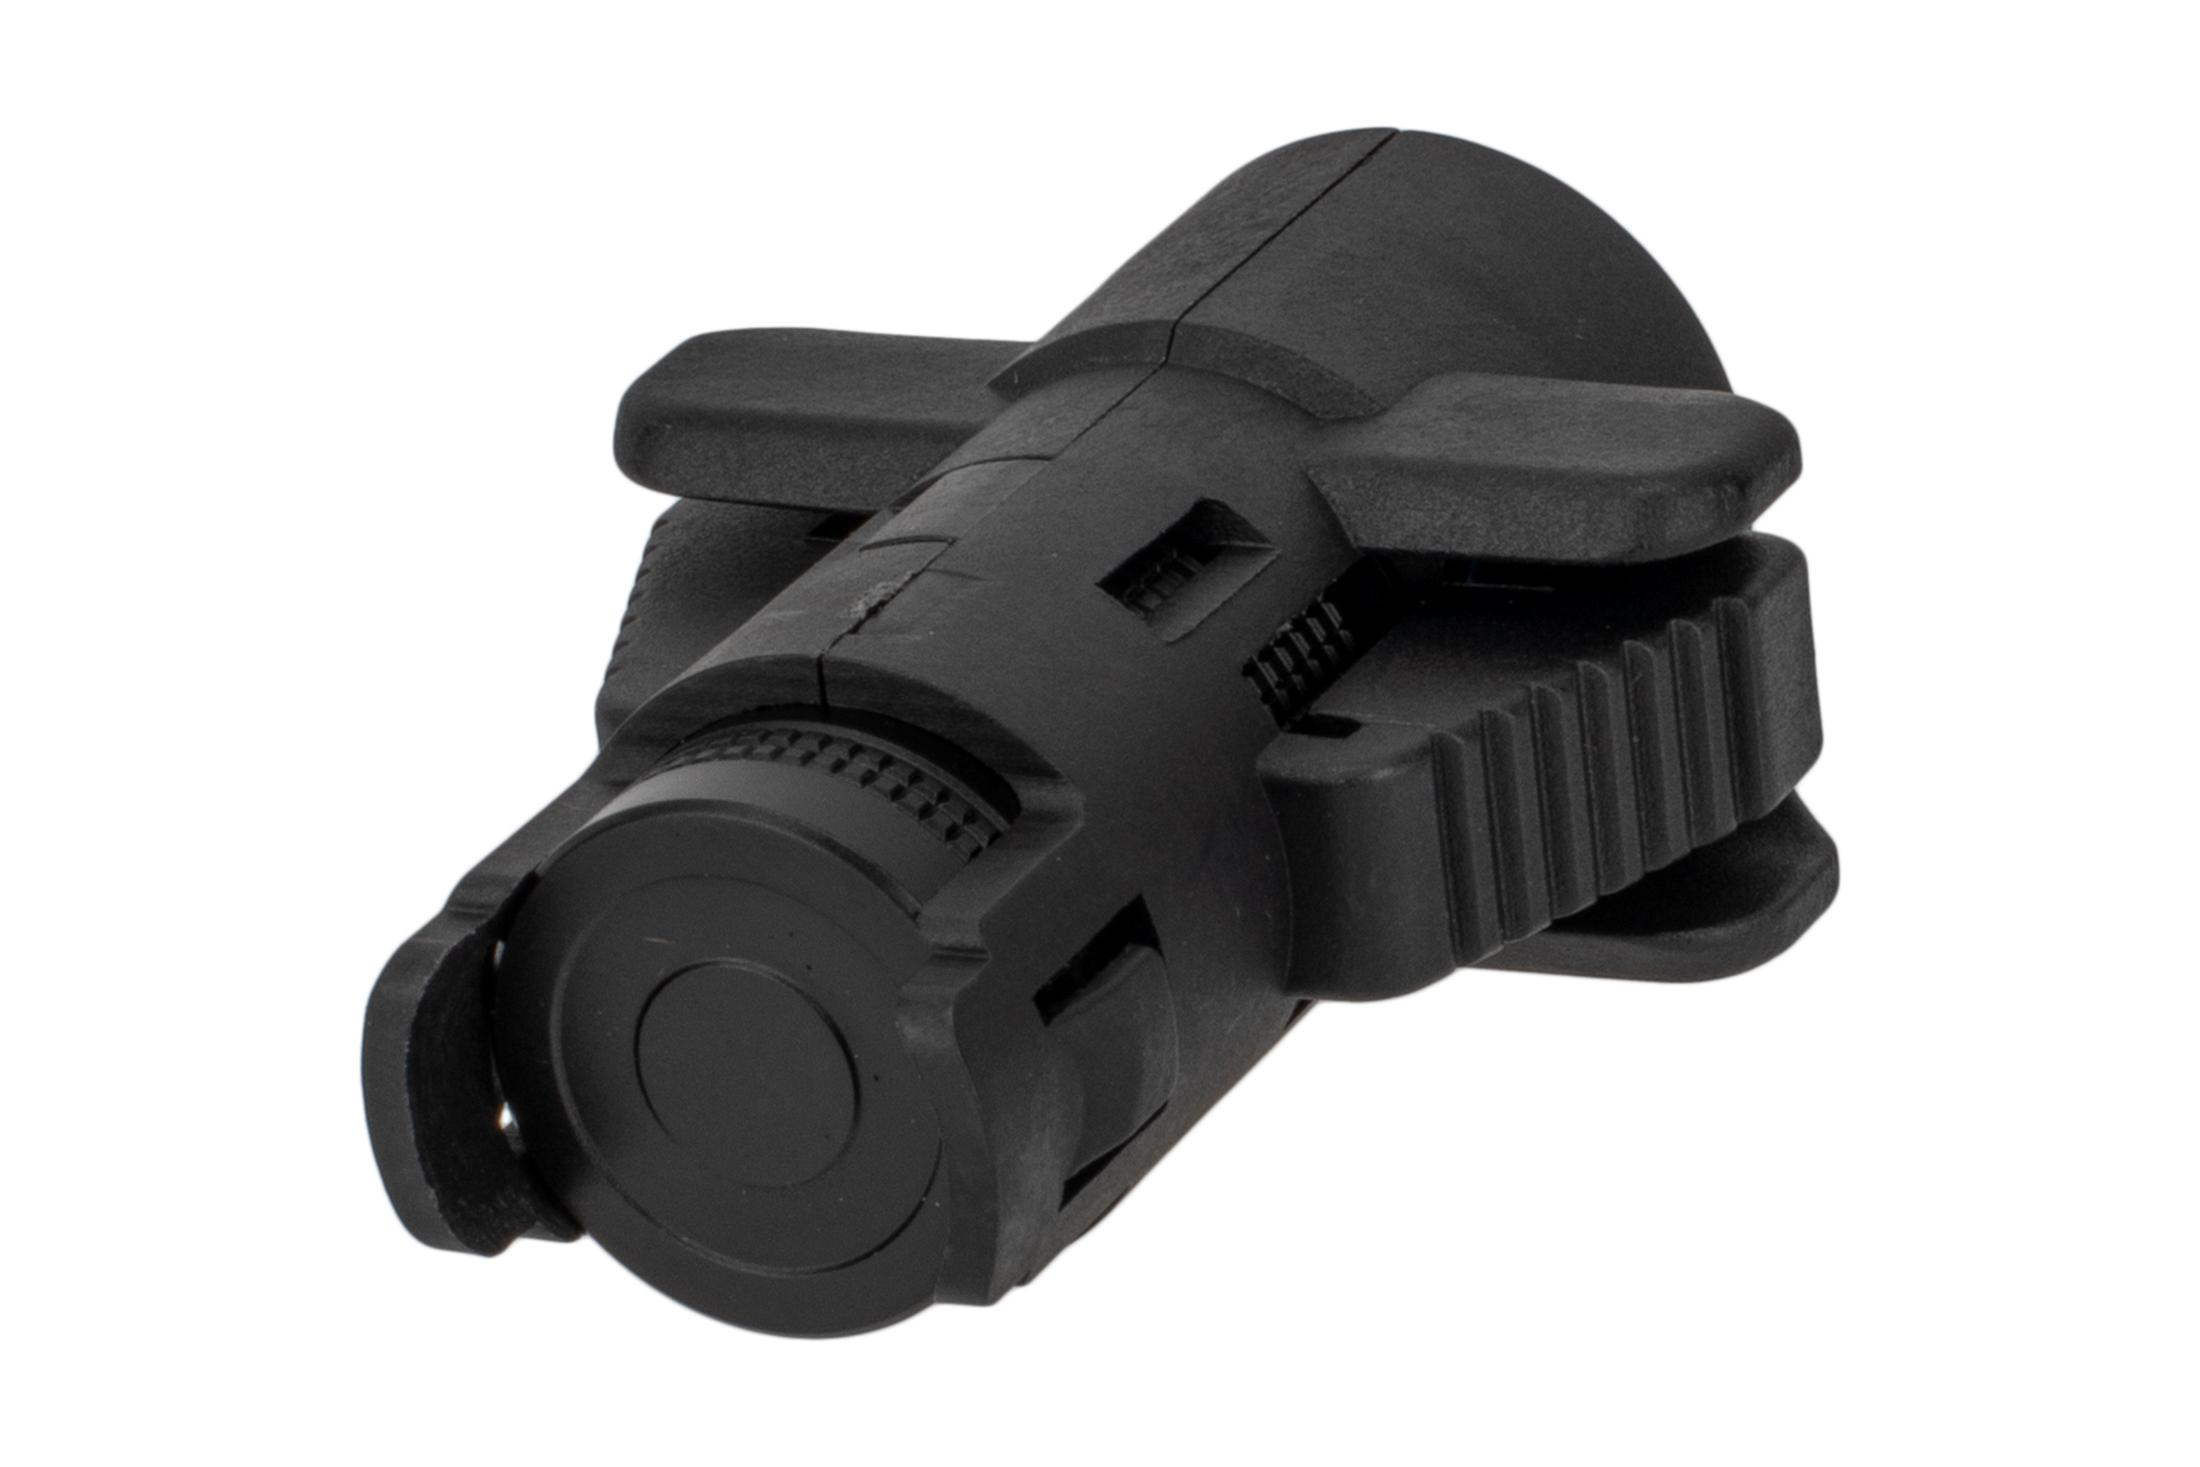 The Command Arms tactical light for MCK outputs 500 Lumens of light